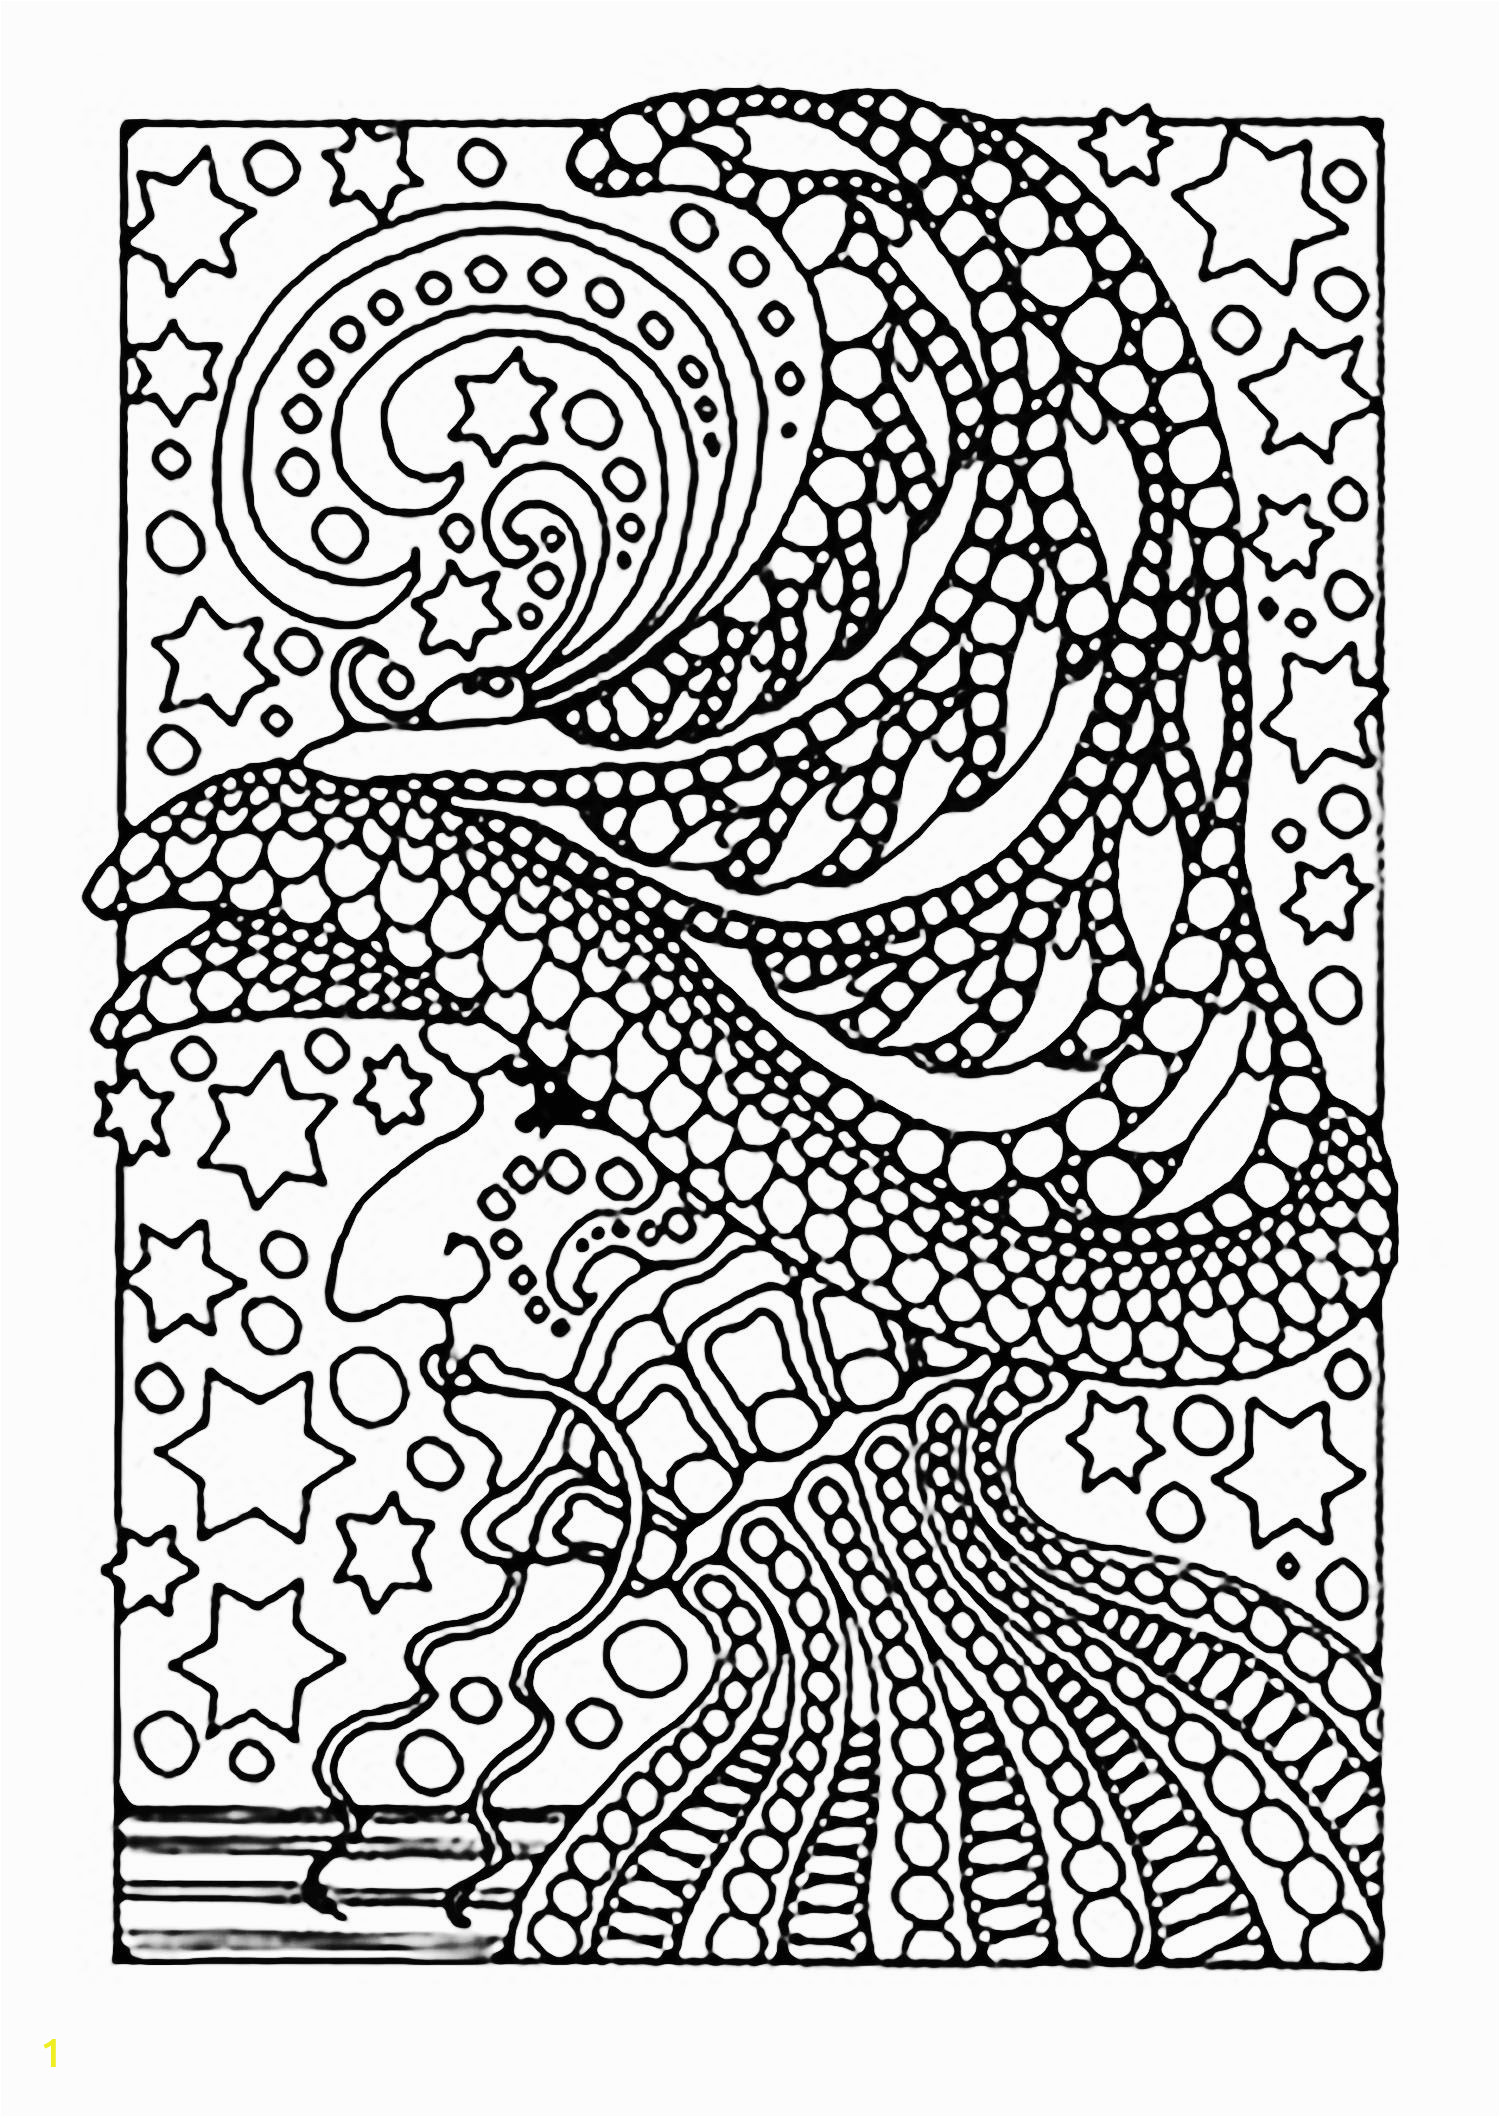 Halloween Coloring Math Pages A Scary Witch Color All these Stars From the Gallery